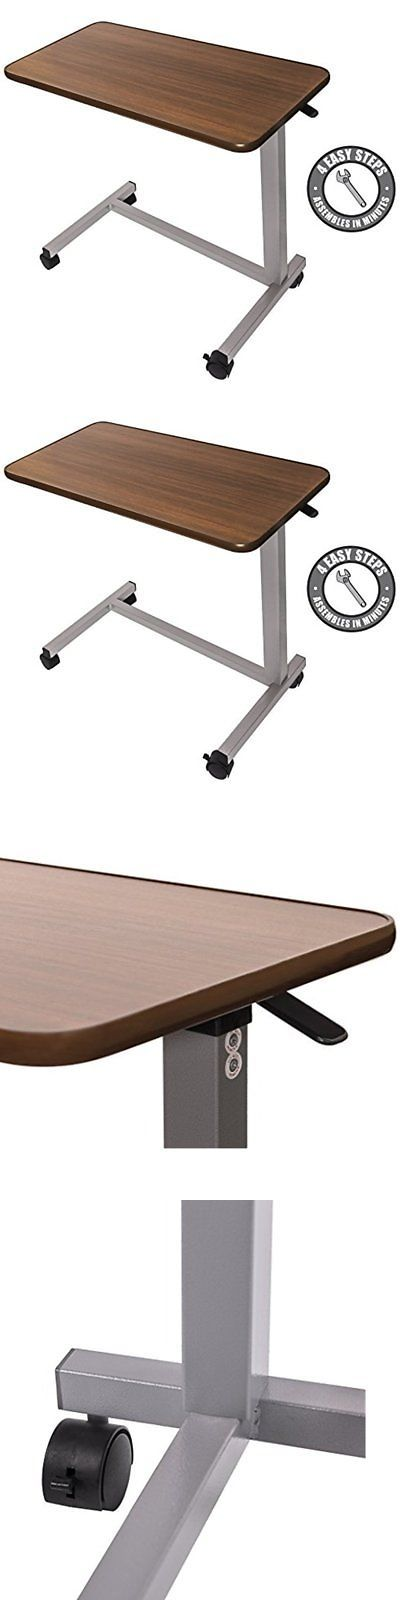 Bed and Chair Tables: Eva Medical Adjustable Overbed Table With Wheels (Hospital And Home Use) -> BUY IT NOW ONLY: $72.13 on eBay!